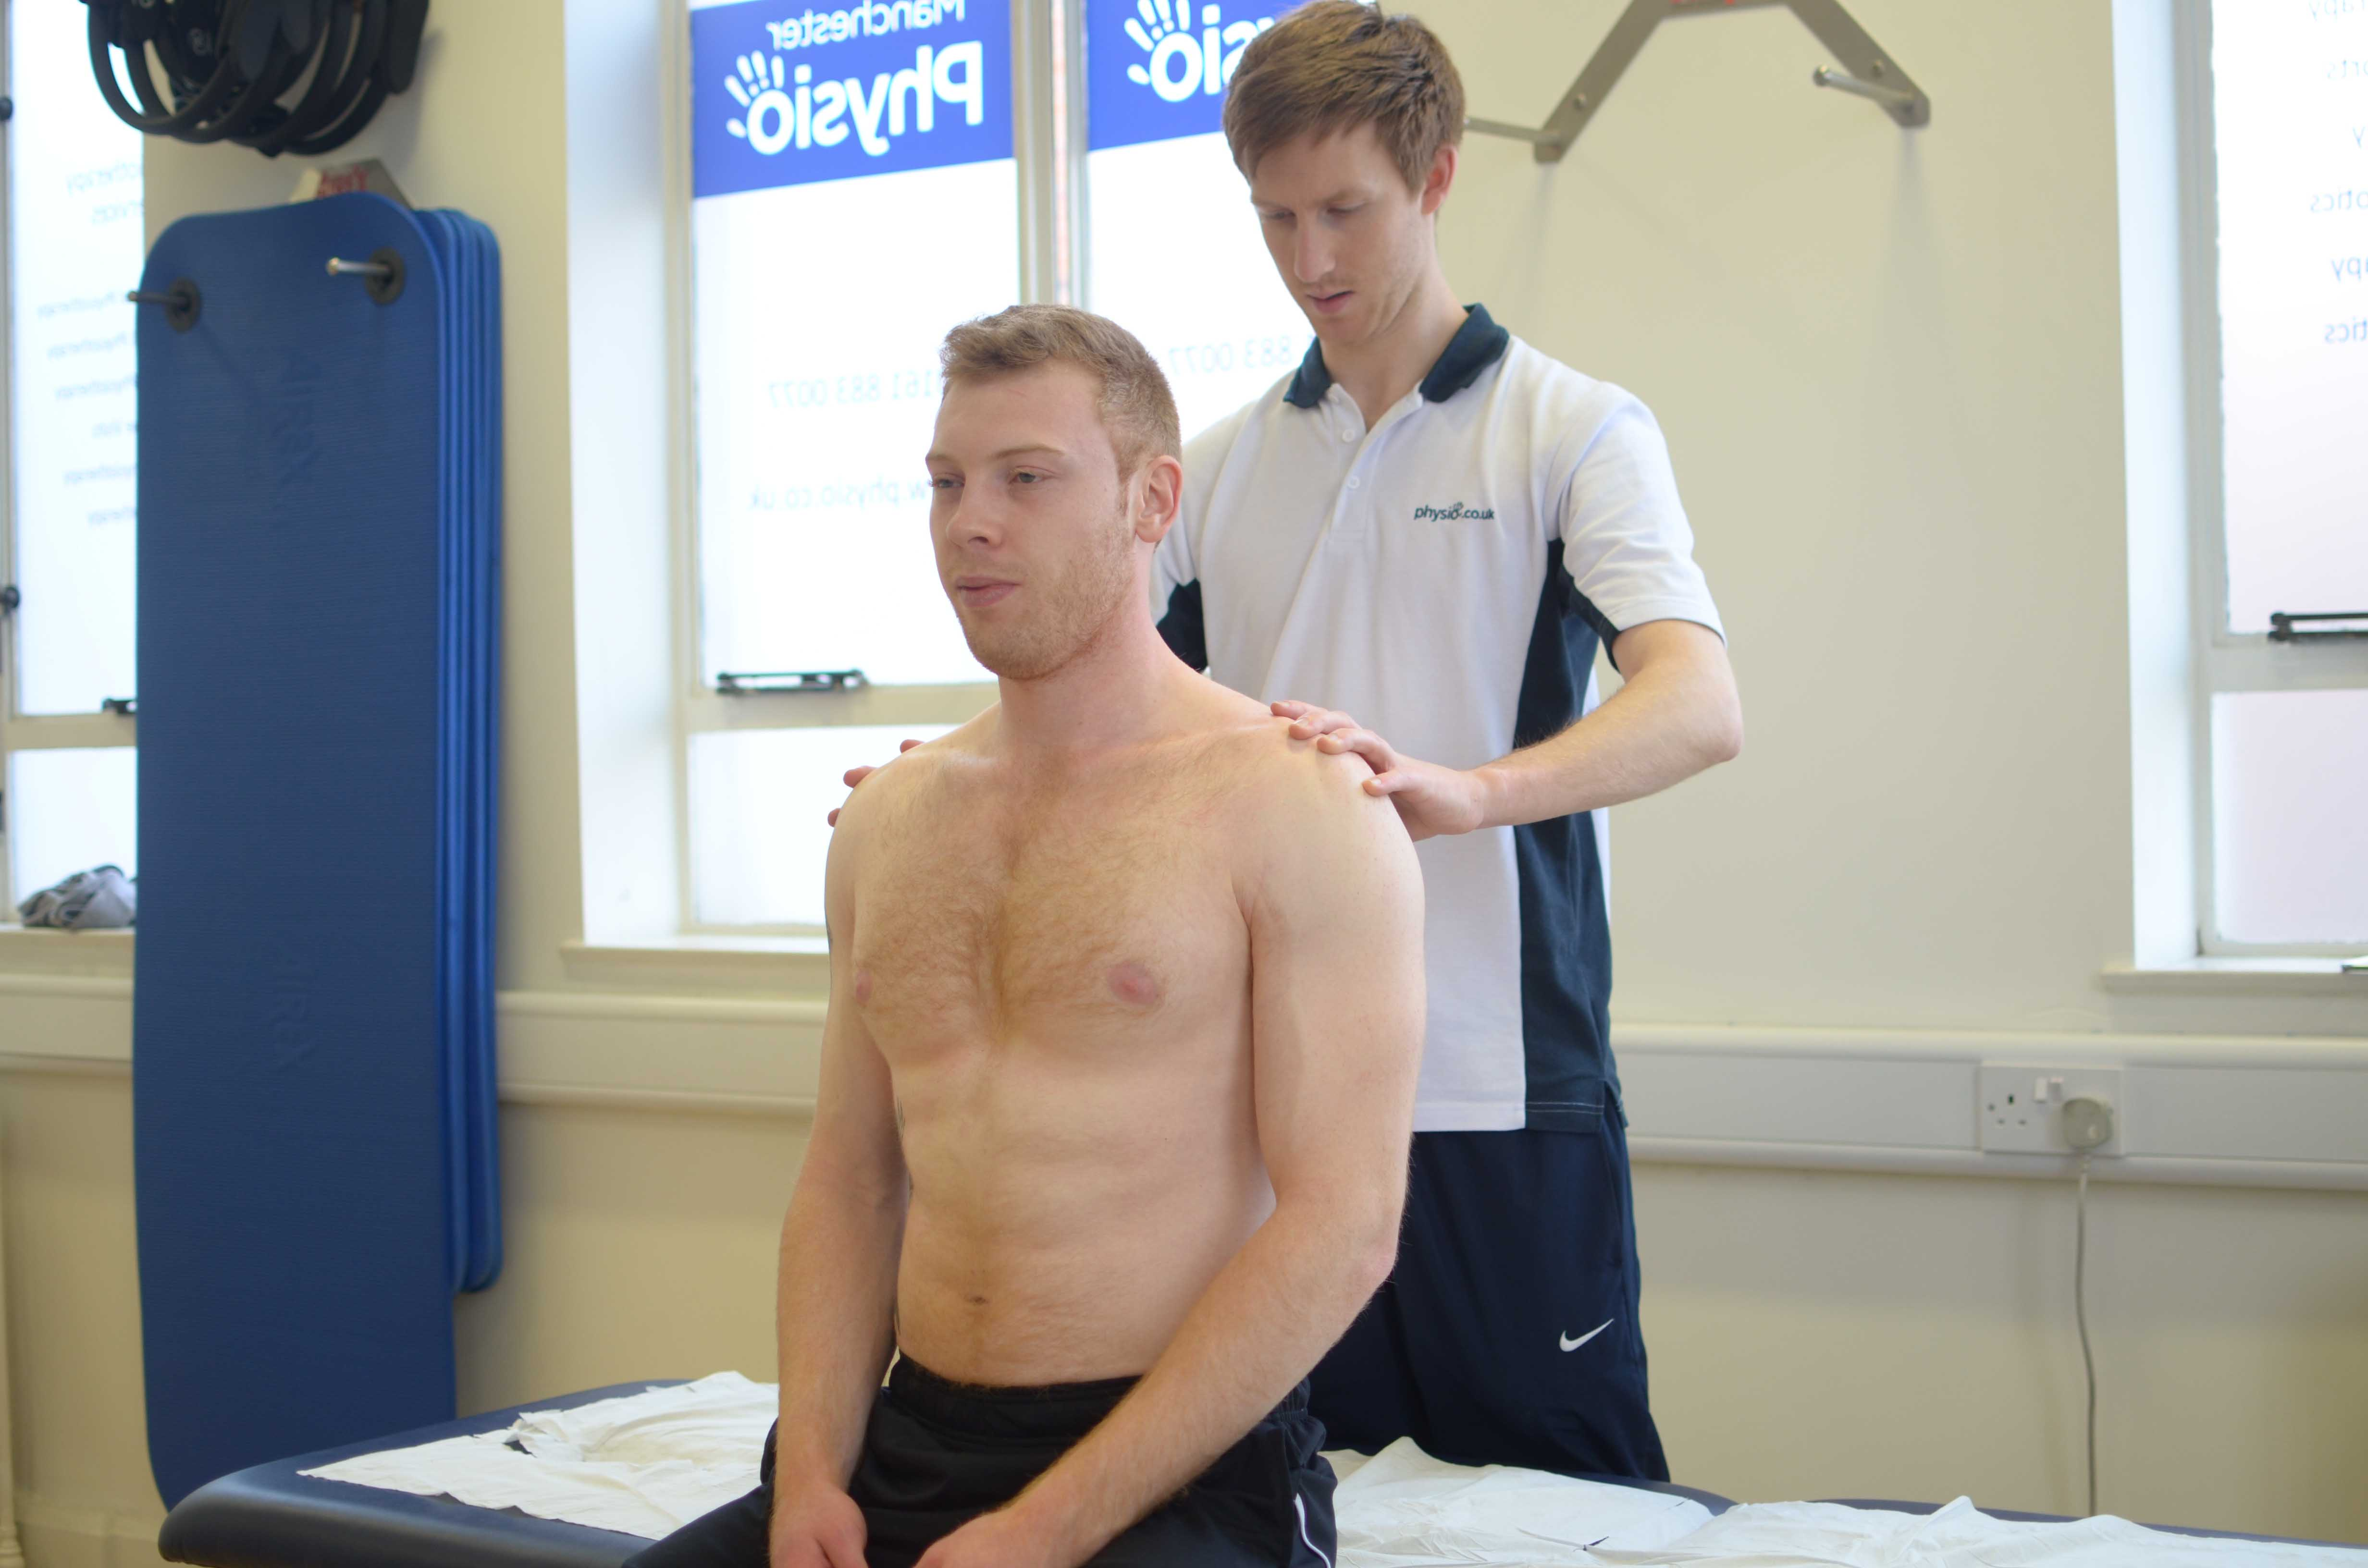 Active cycle of breathing exercises supervised by a specialist therapist